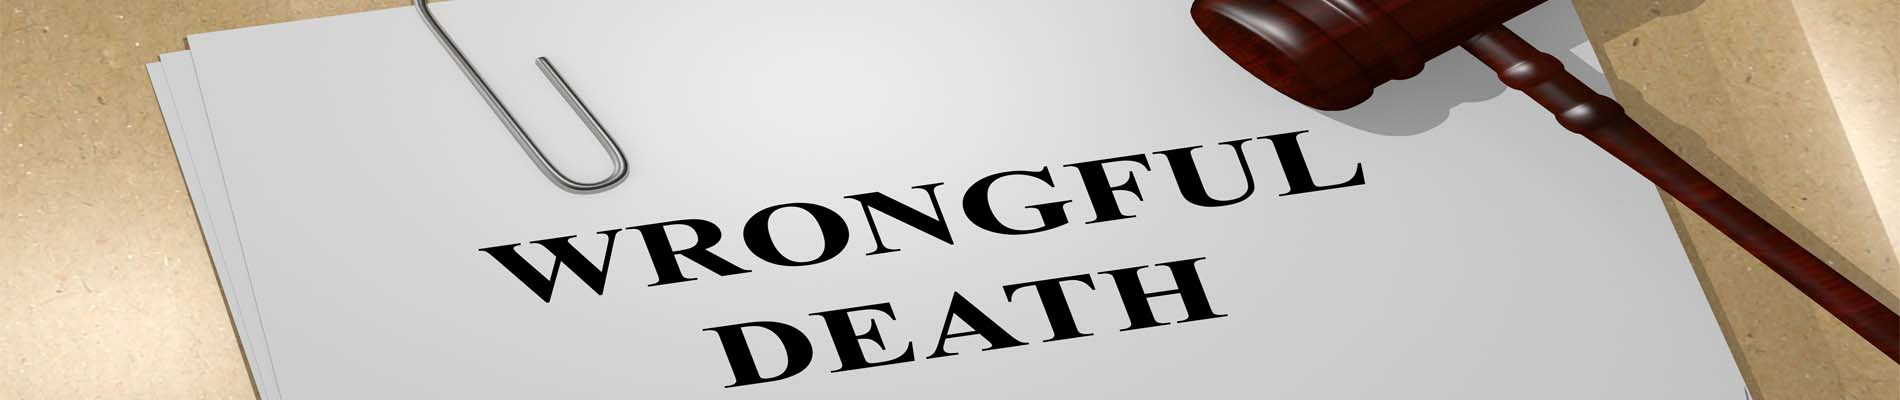 Who Are Wrongful Death Heirs in California? Who Can File a Lawsuit to Seek Damages?